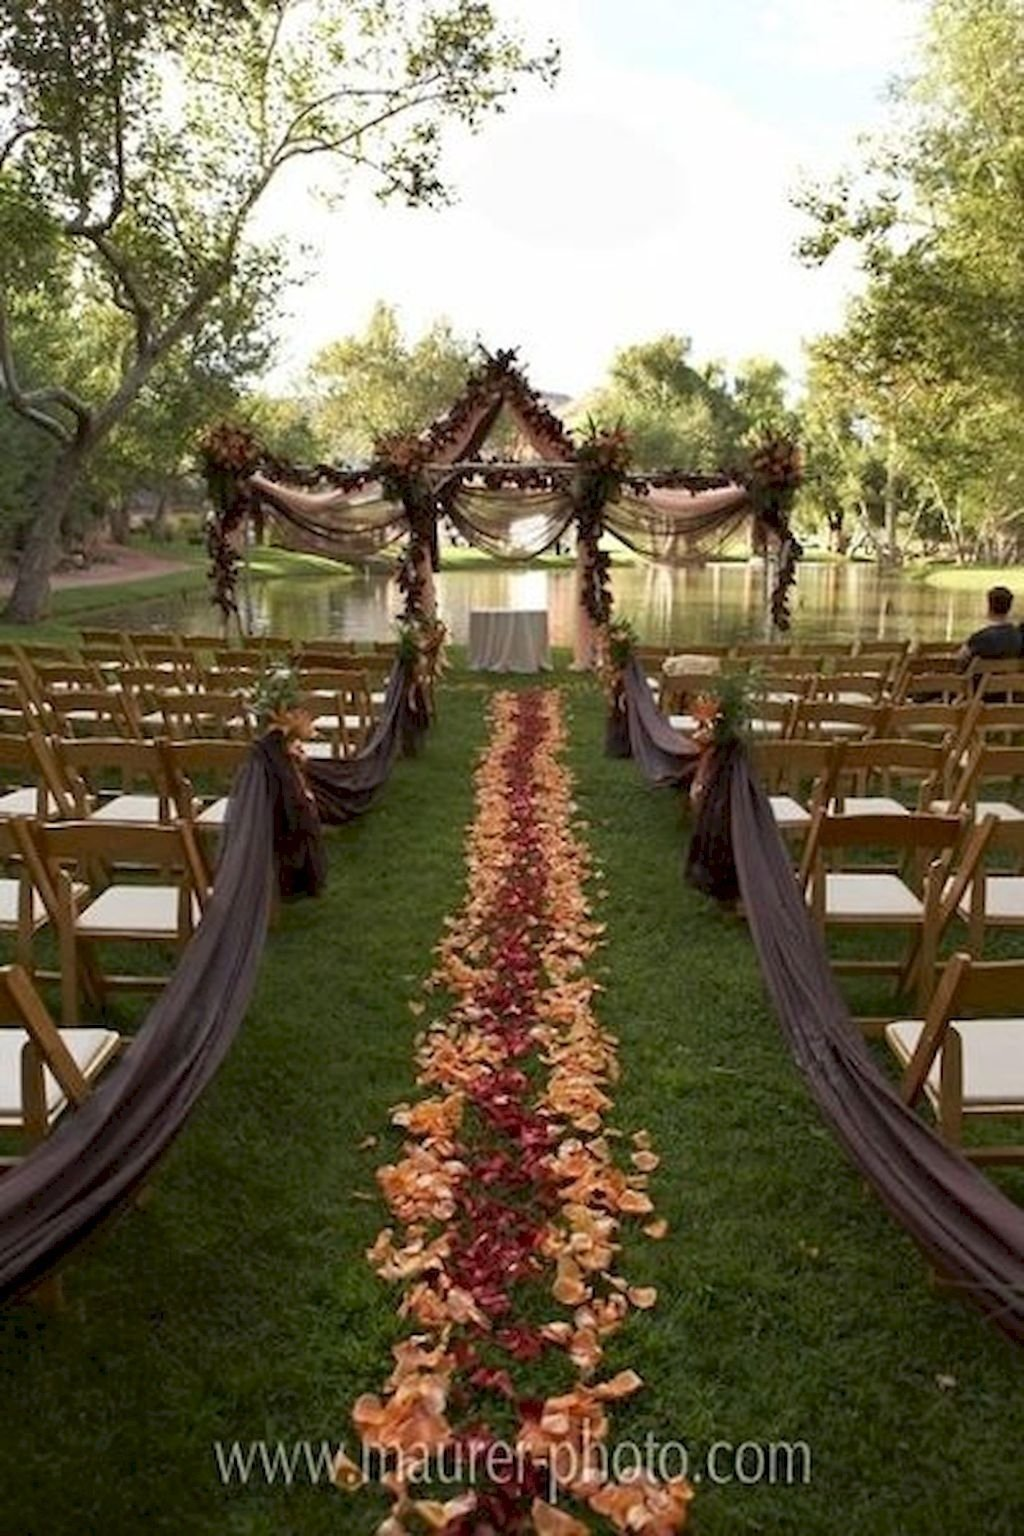 36 amazing fall outdoor wedding ideas on a budget | budgeting, nice